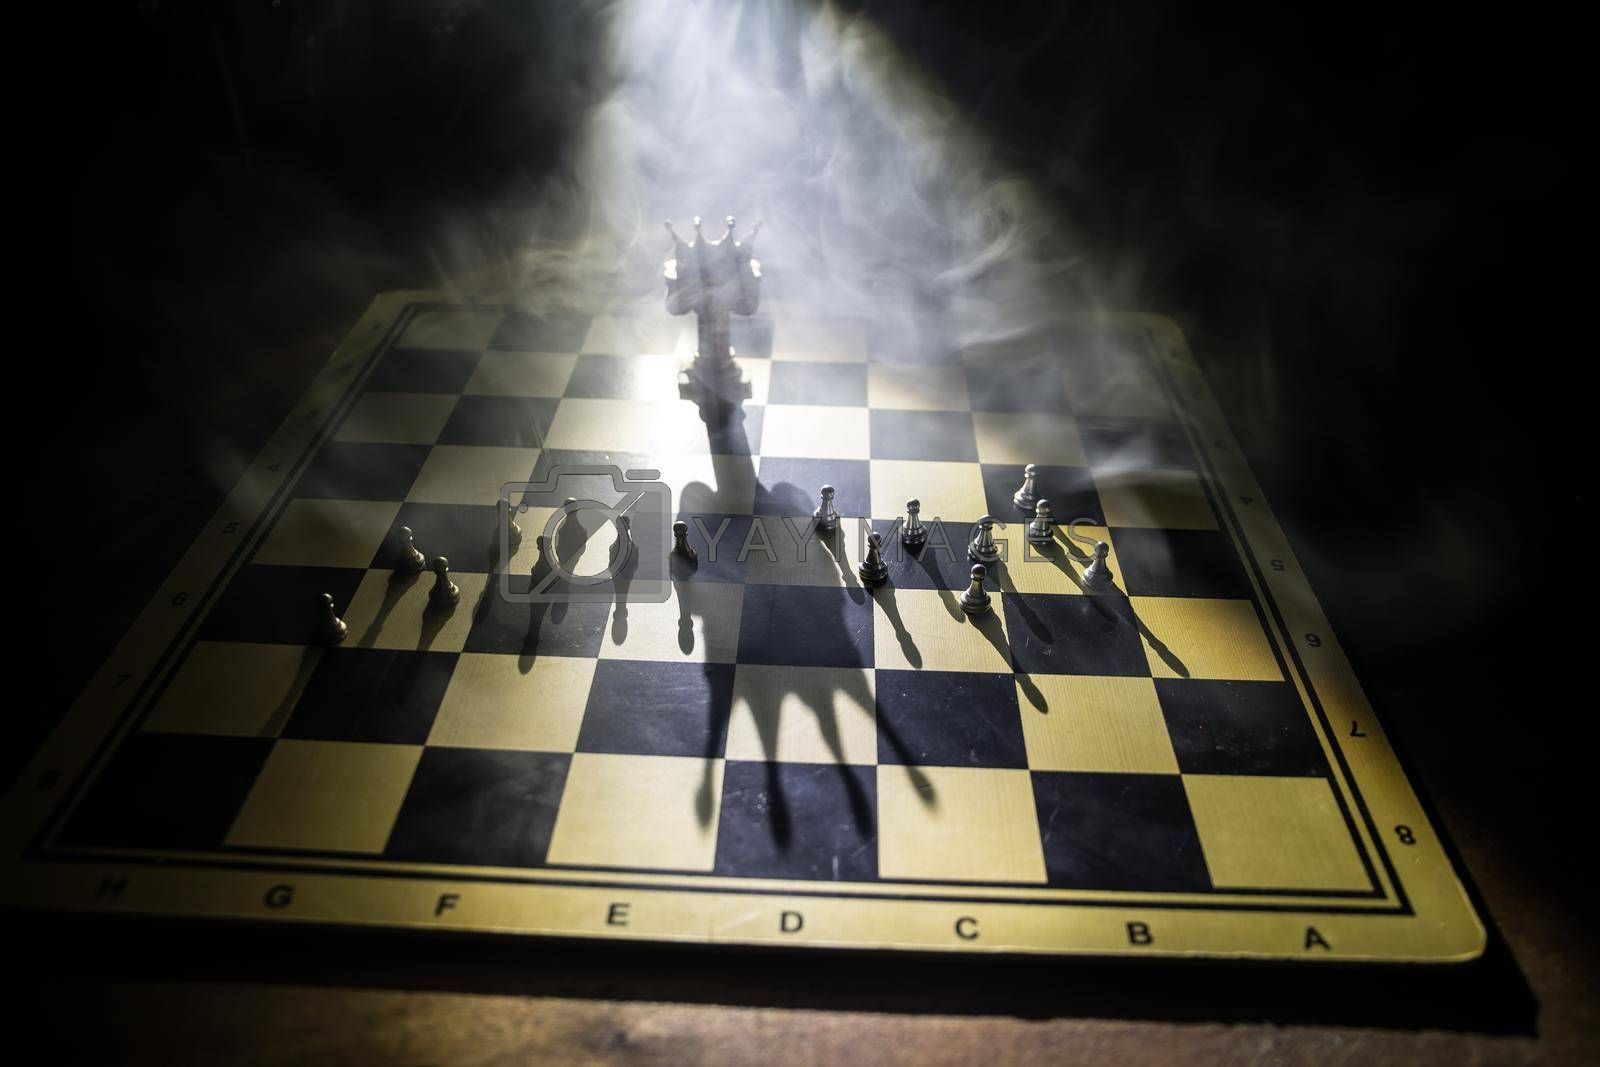 Beautiful crown miniature on chessboard. chess board game concept of business ideas and competition and strategy ideas concept. Chess figures on a dark background with smoke and fog. Selective focus